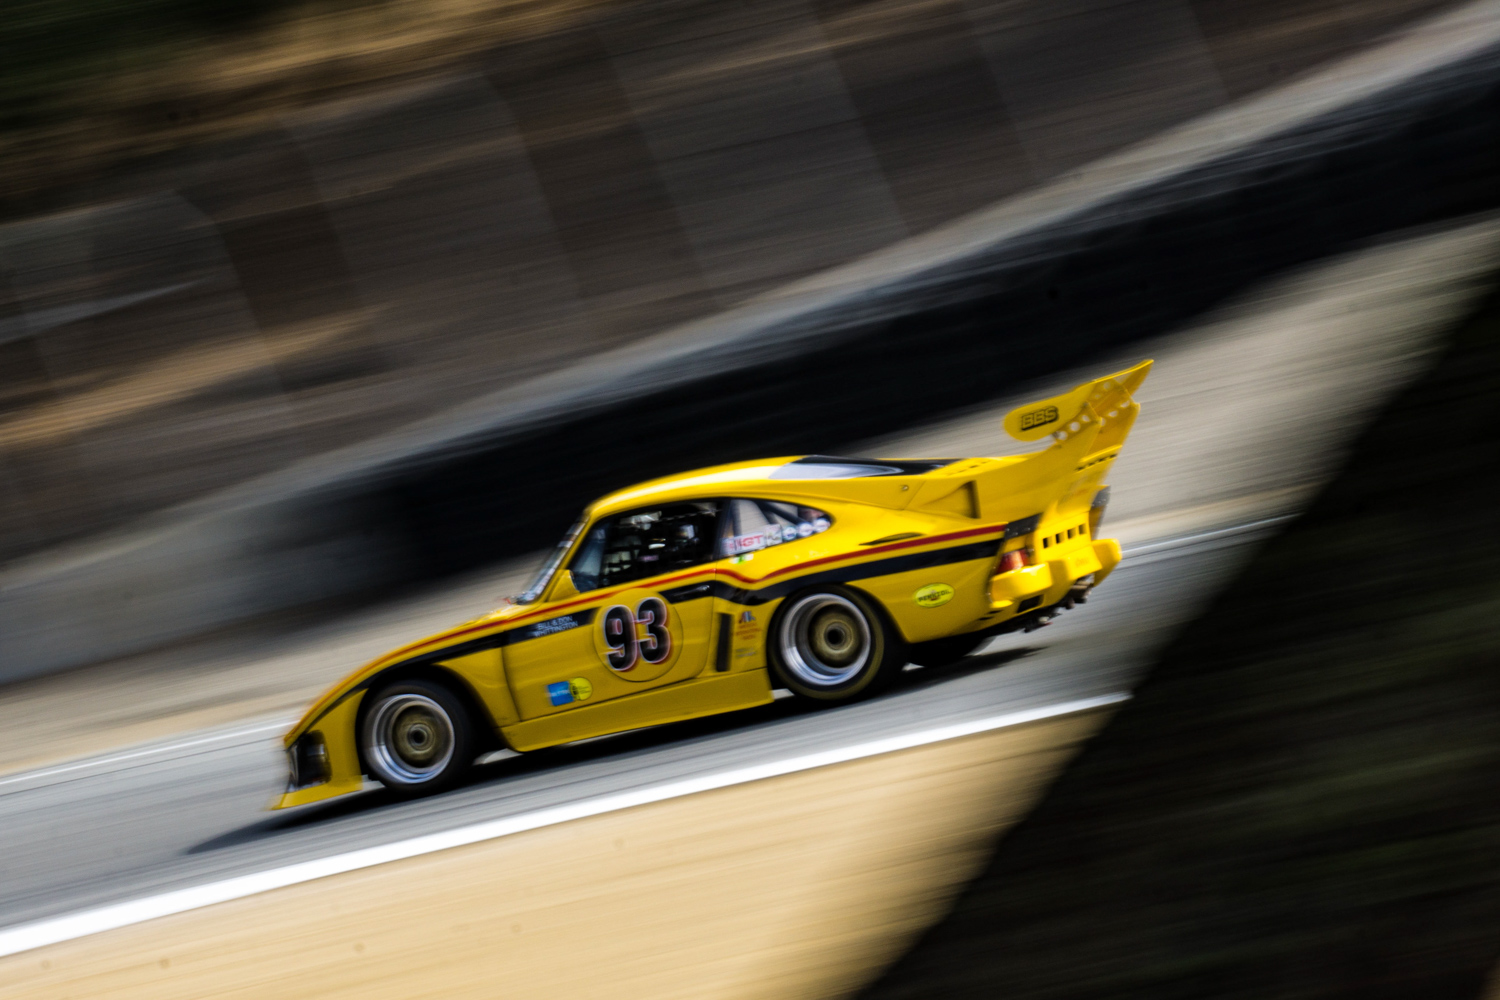 Old Porsche 935  yellow on track